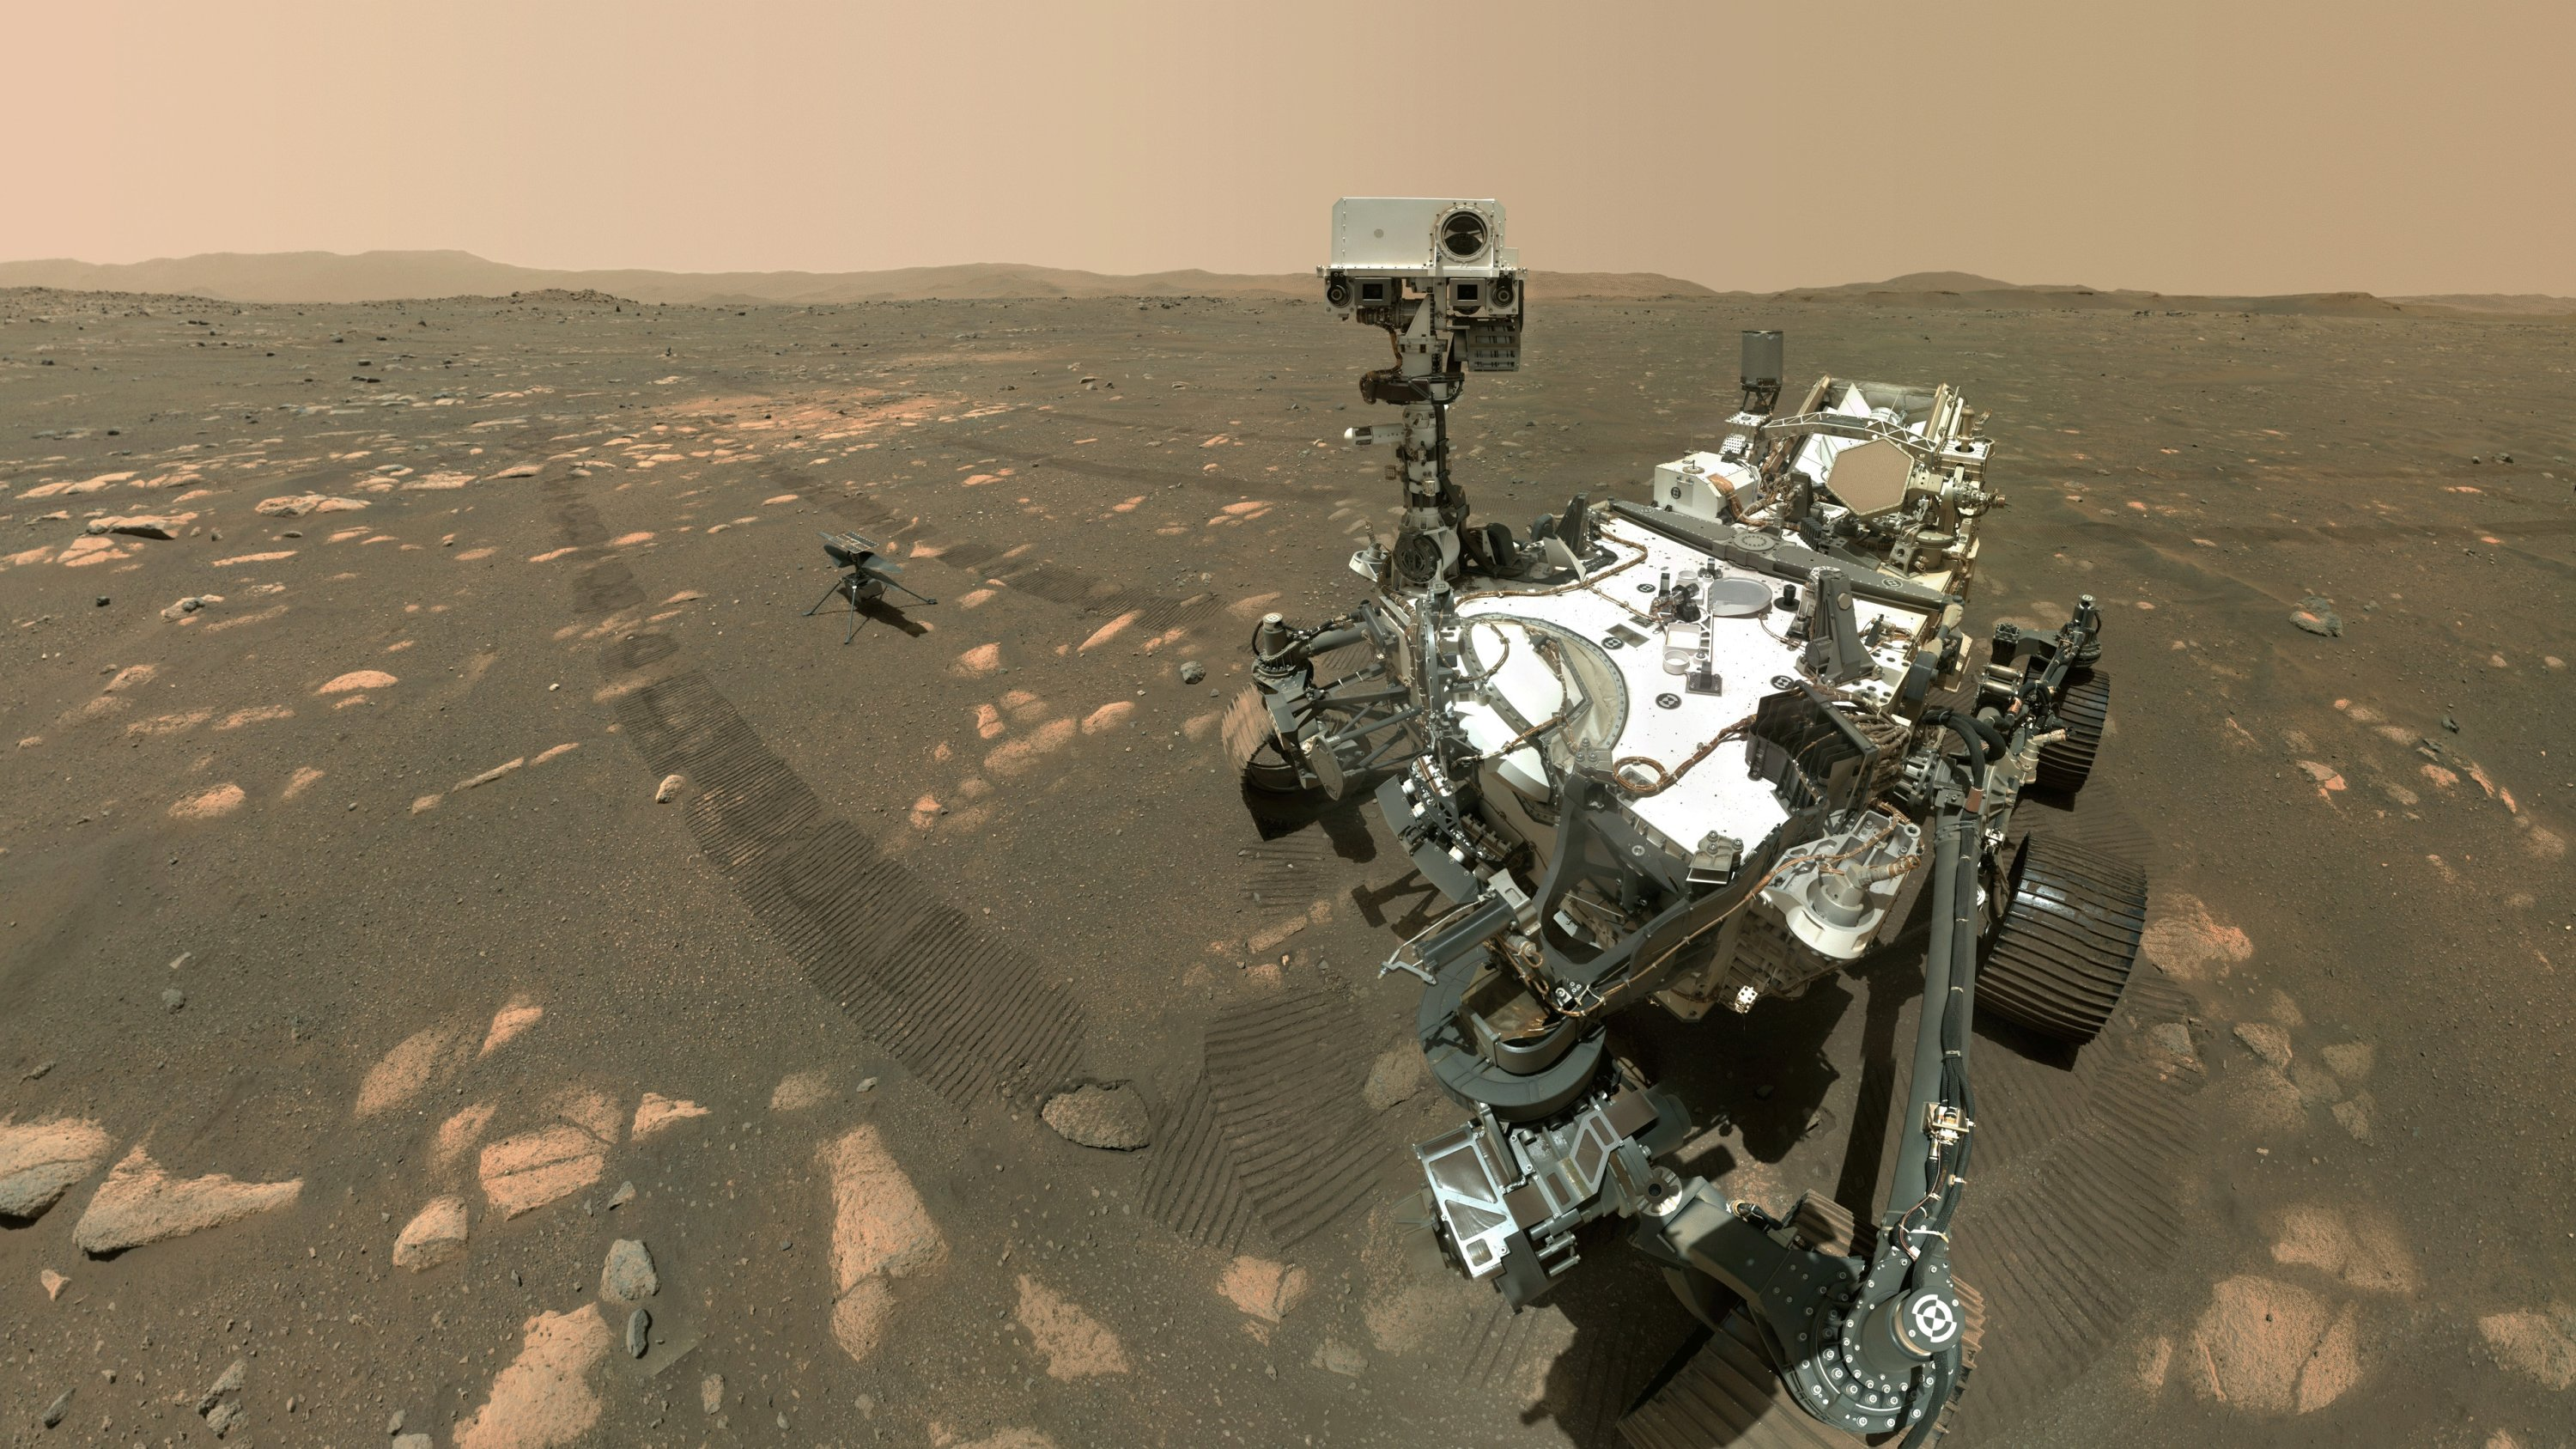 The Perseverance Mars rover (front) and the Ingenuity helicopter about 13 feet (3.9 meters) behind. This composite image was made by the WASTON camera on the rover's robotic arm on the 46th Martian day, or sol, of the mission, or April 6, 2021. (NASA/JPL-Caltech/MSSS via AP)